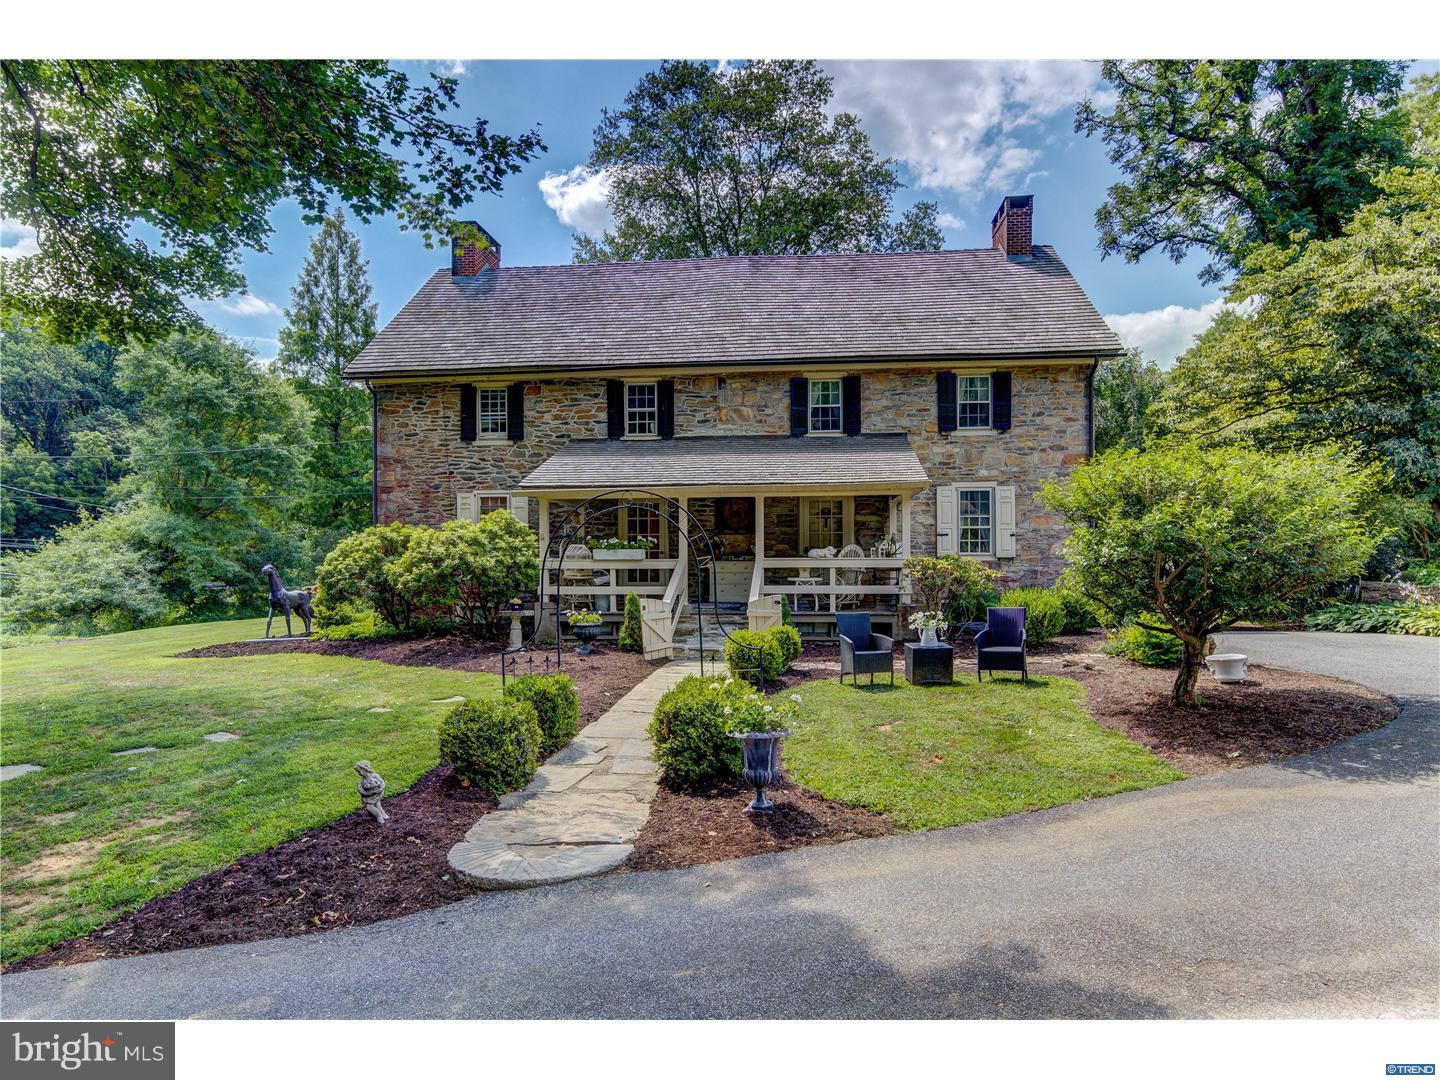 1265 PARKERSVILLE ROAD, KENNETT SQUARE, PA 19348